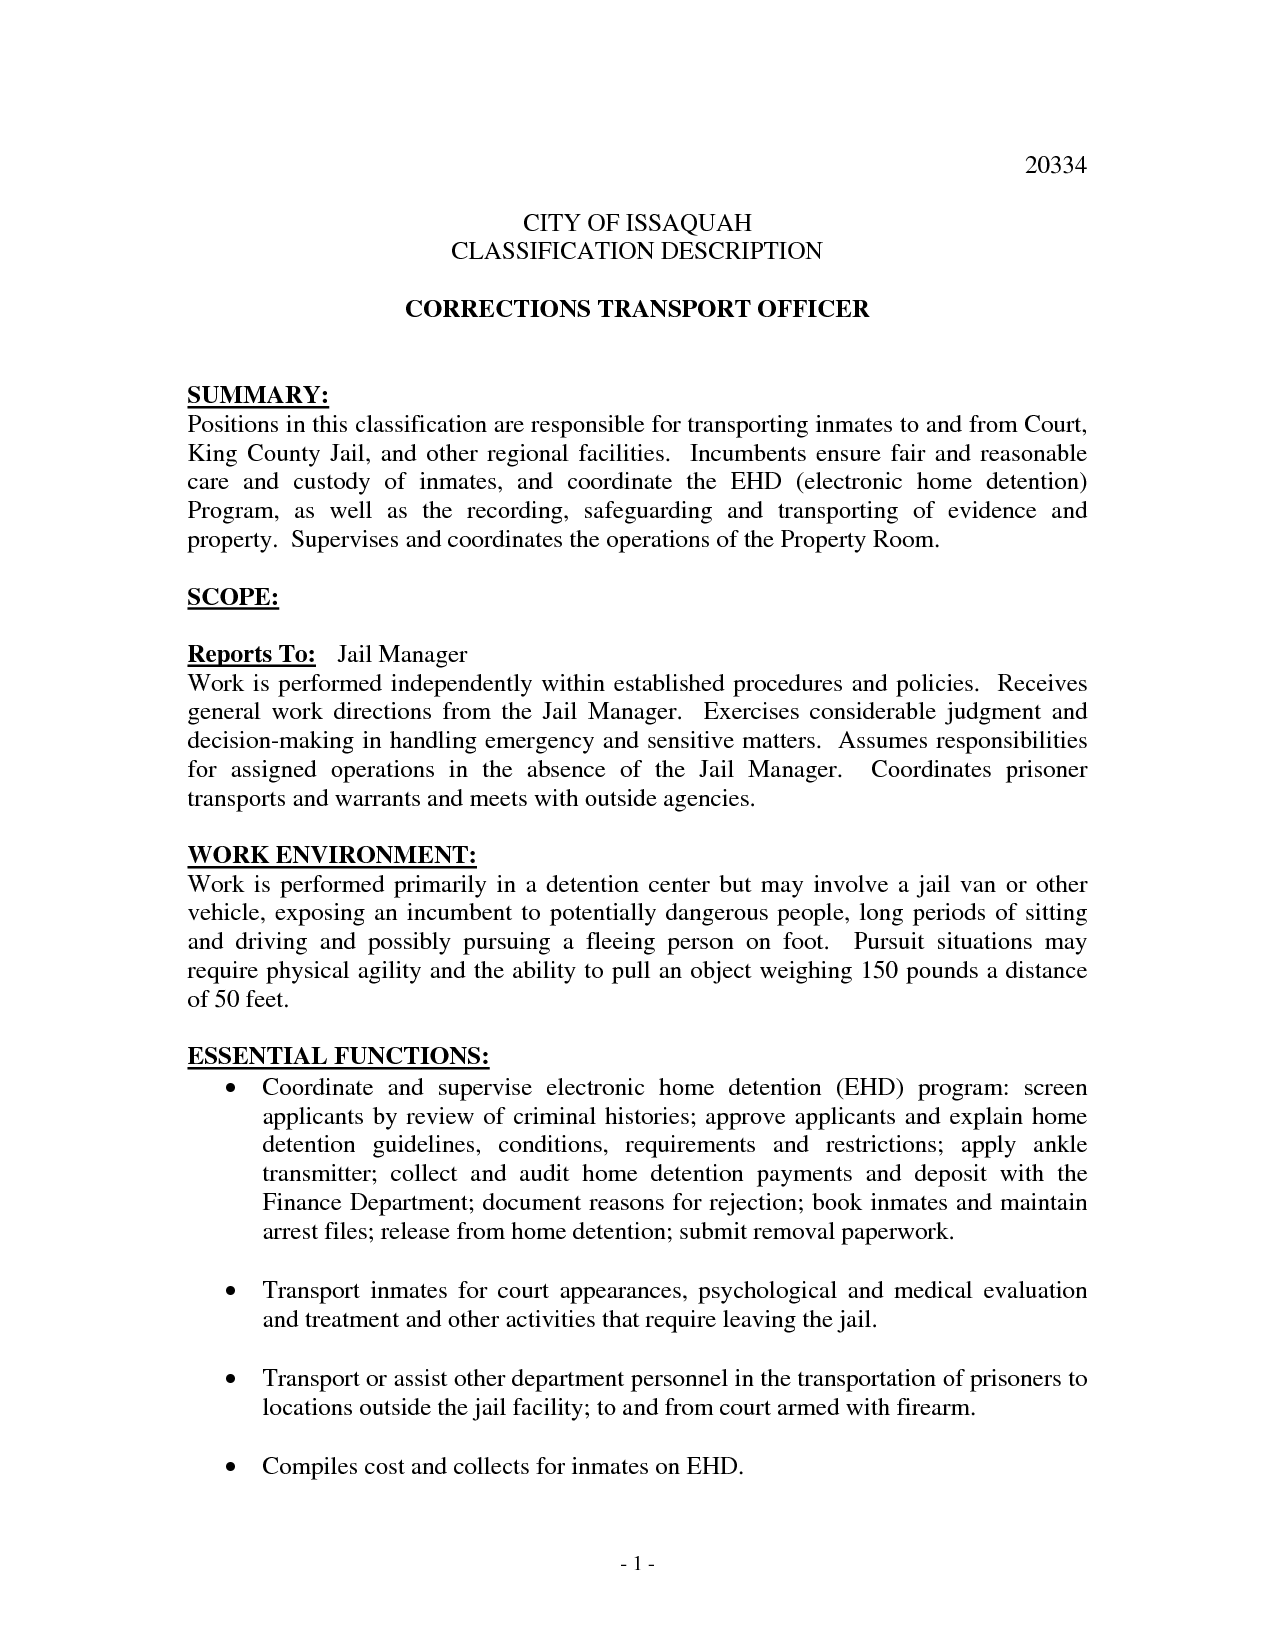 Correctional Officer Resume No Experience - http://www.jobresume ...